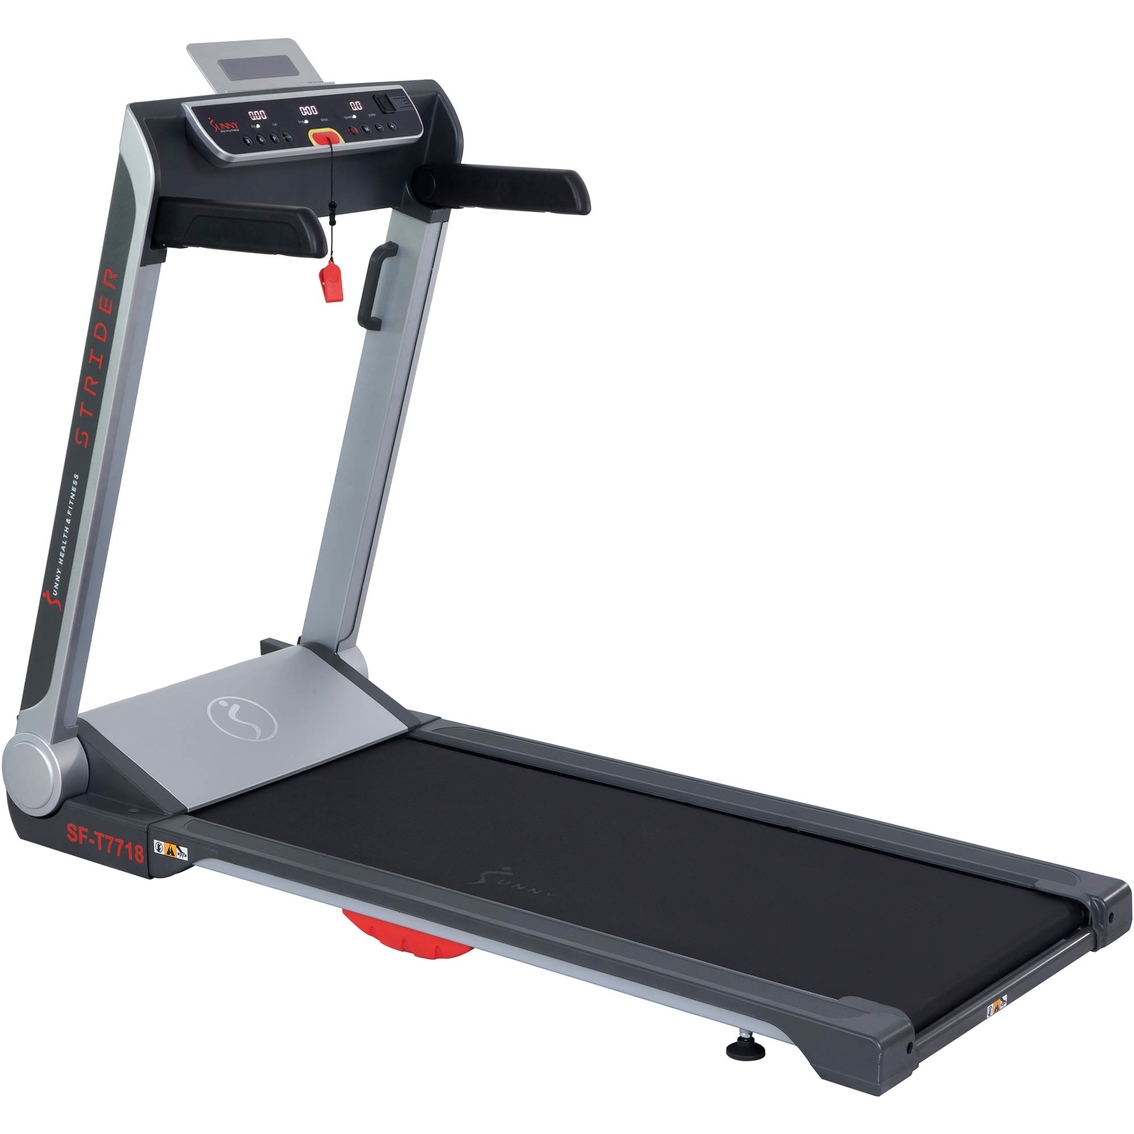 Sunny health & fitness strider treadmill with 20 in. wide lopro deck